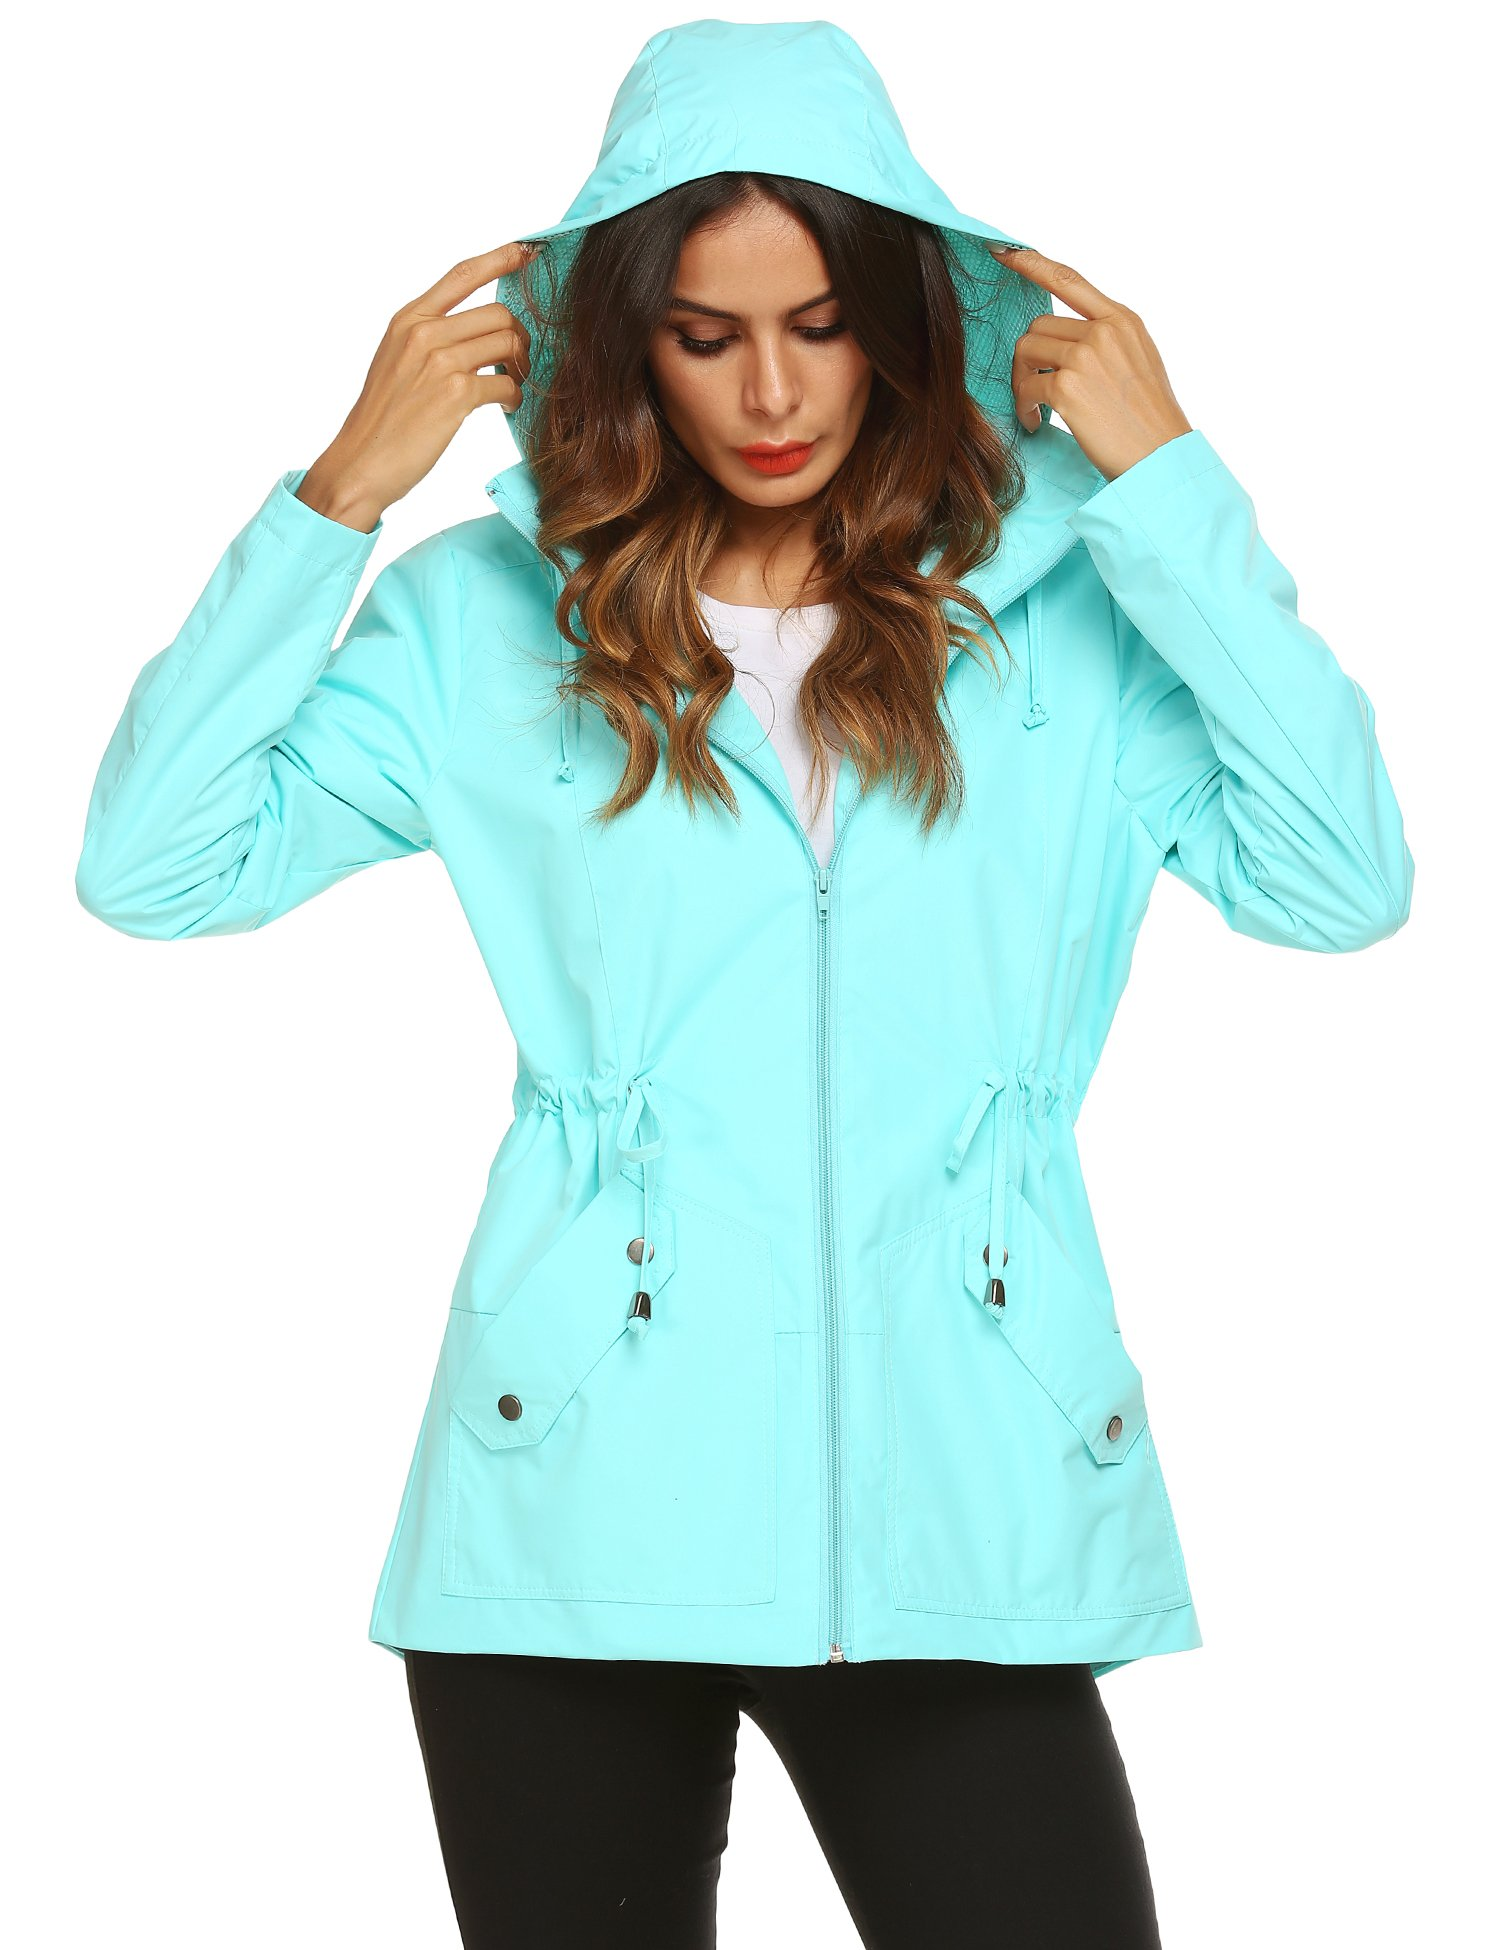 Romanstii Rain Jacket for Women Waterproof with Hood Lightweight Breathable Casual Coats,Jacket for Women Windbreaker Light Blue,Small by Romanstii